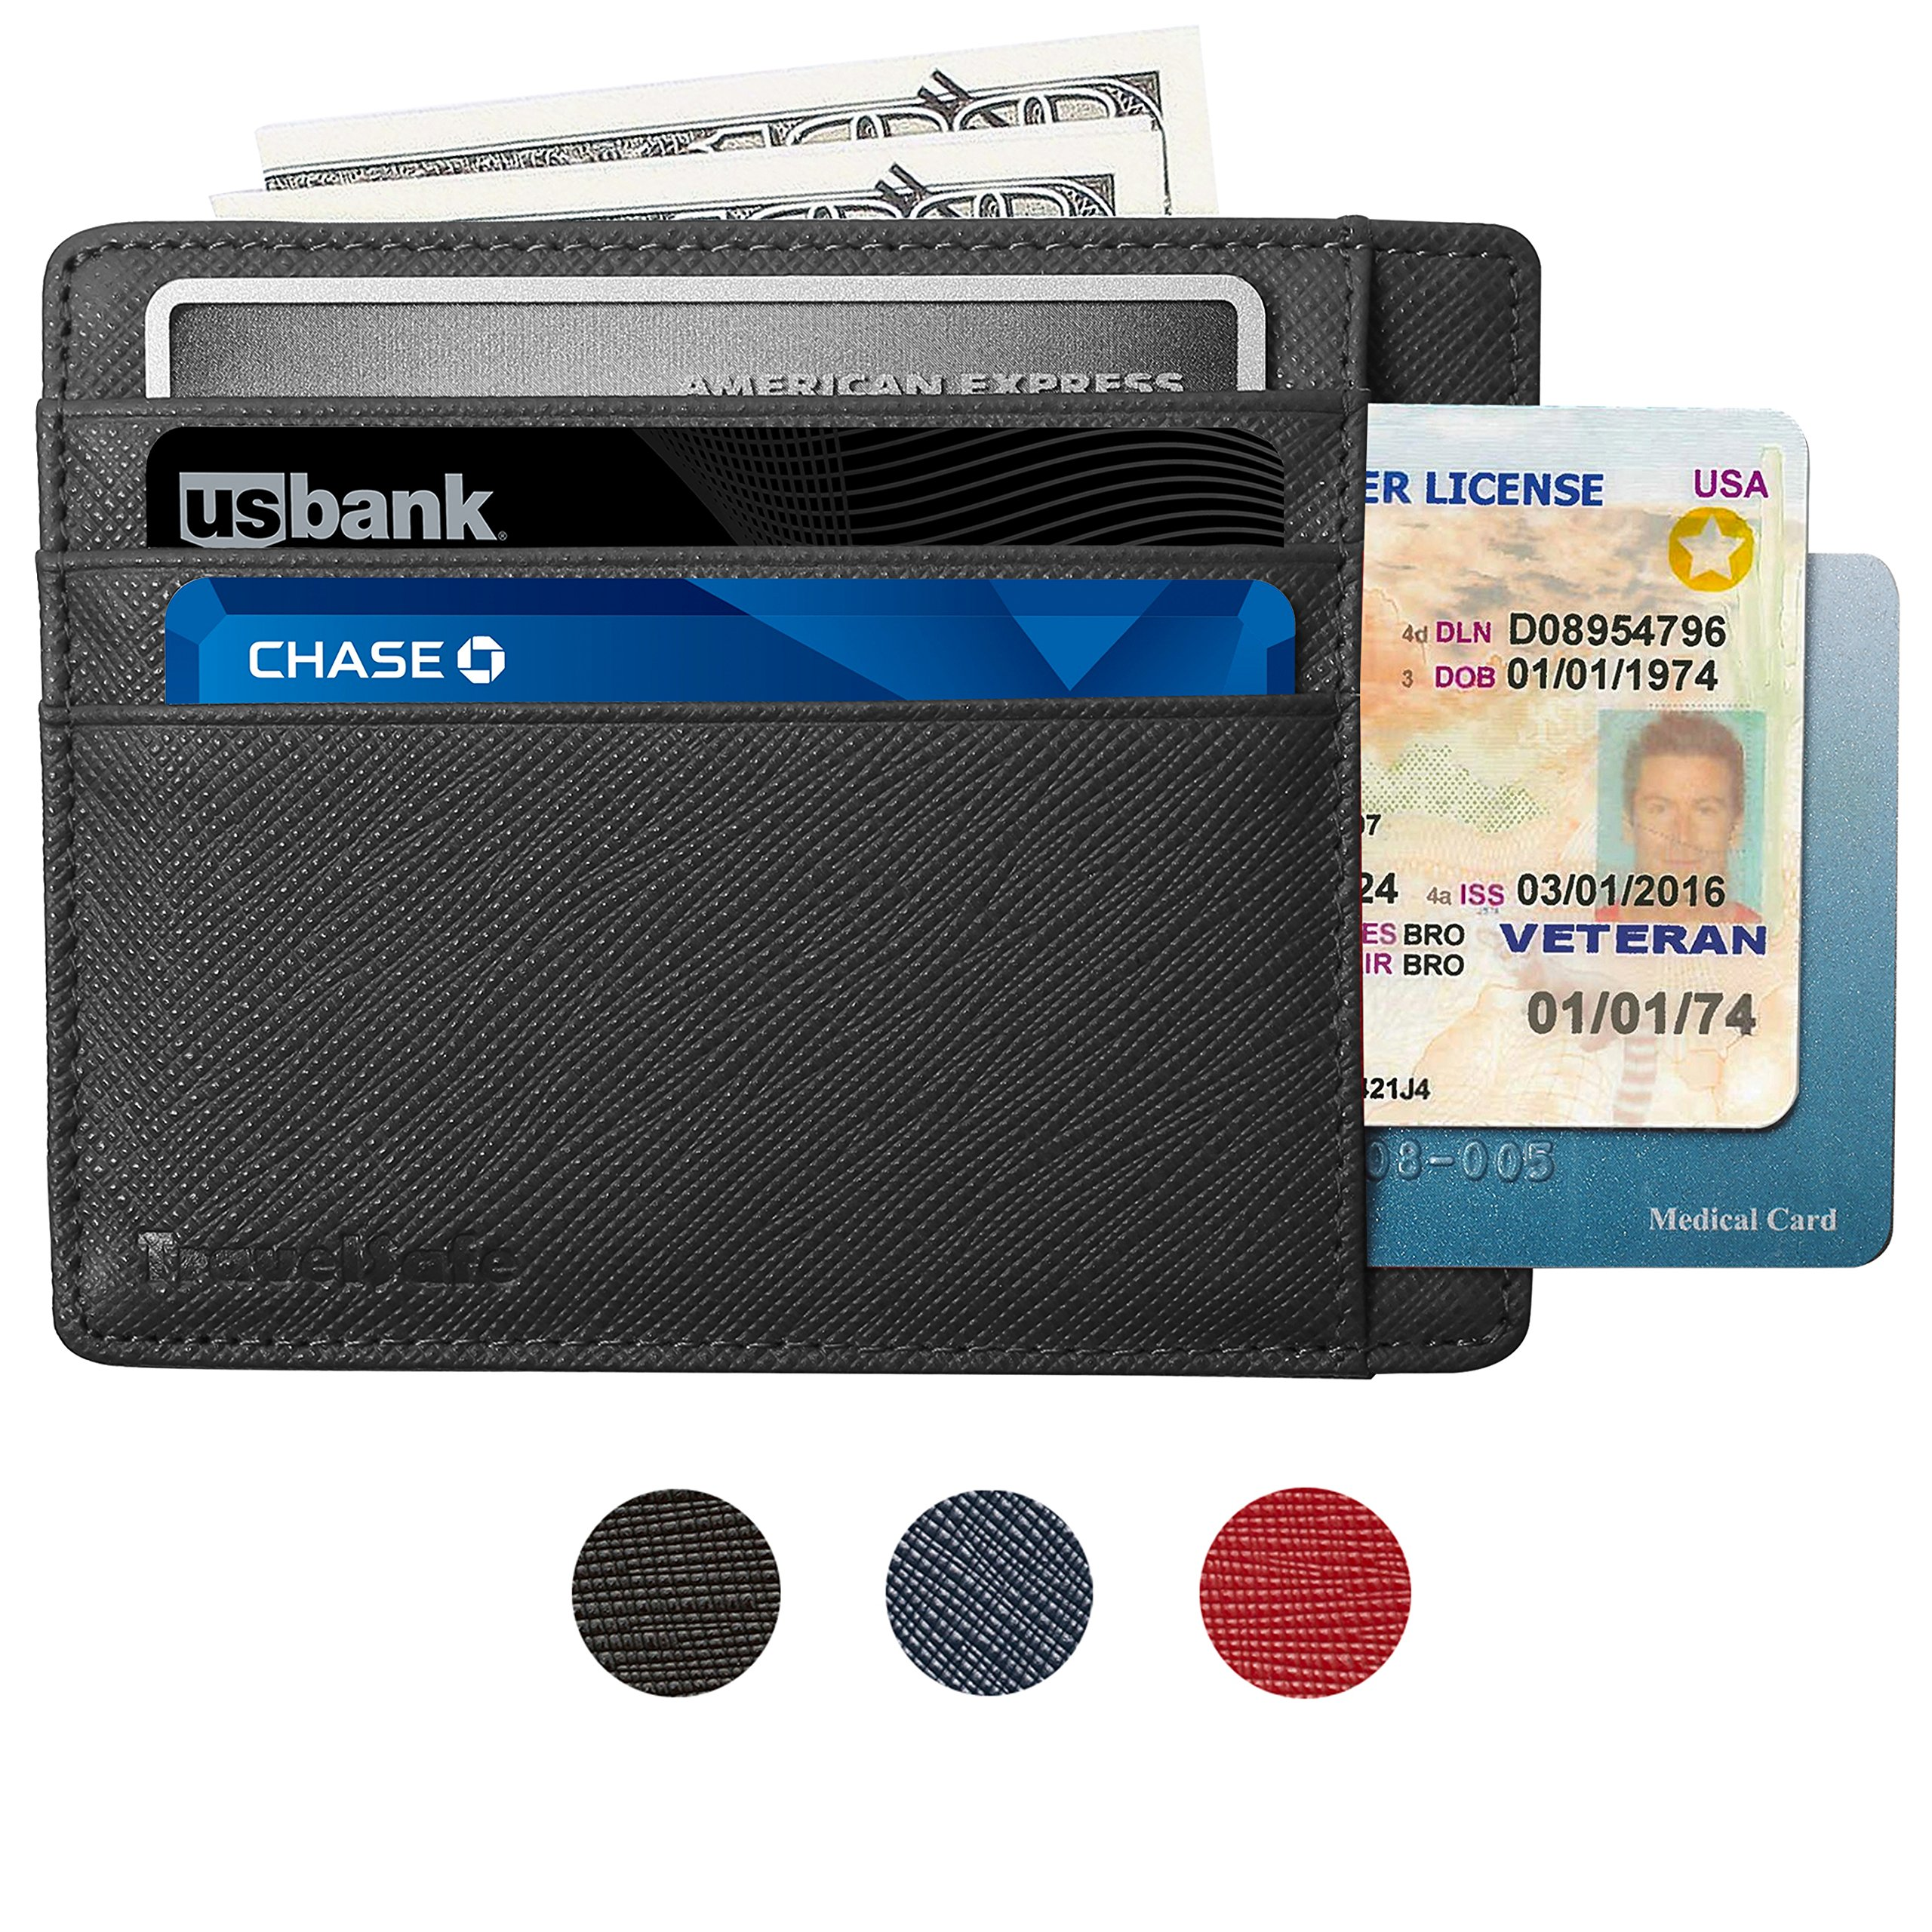 RFID Blocking Credit Card Holder Genuine Leather - Slim & Thin 8 Card Slots RFID Credit Card Holder for Women and Men - Minimalist Front Pocket Wallet Design Protects All Credit, ID Cards (Black) by Travelsafe